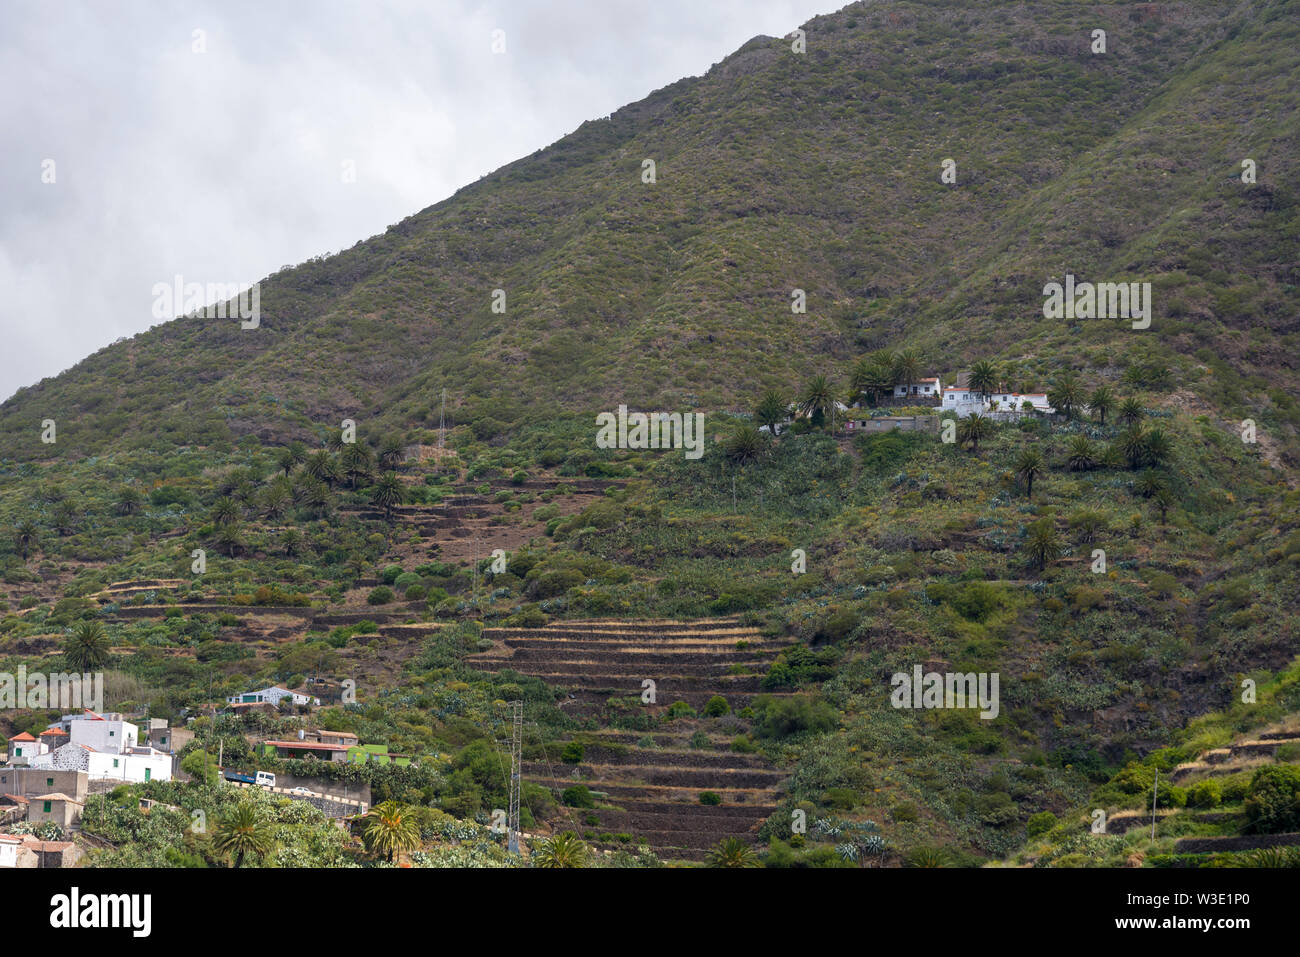 Taganana village on the island of Tenerife-Canary Islands Spain. The concept of tourism and recreation. - Stock Image